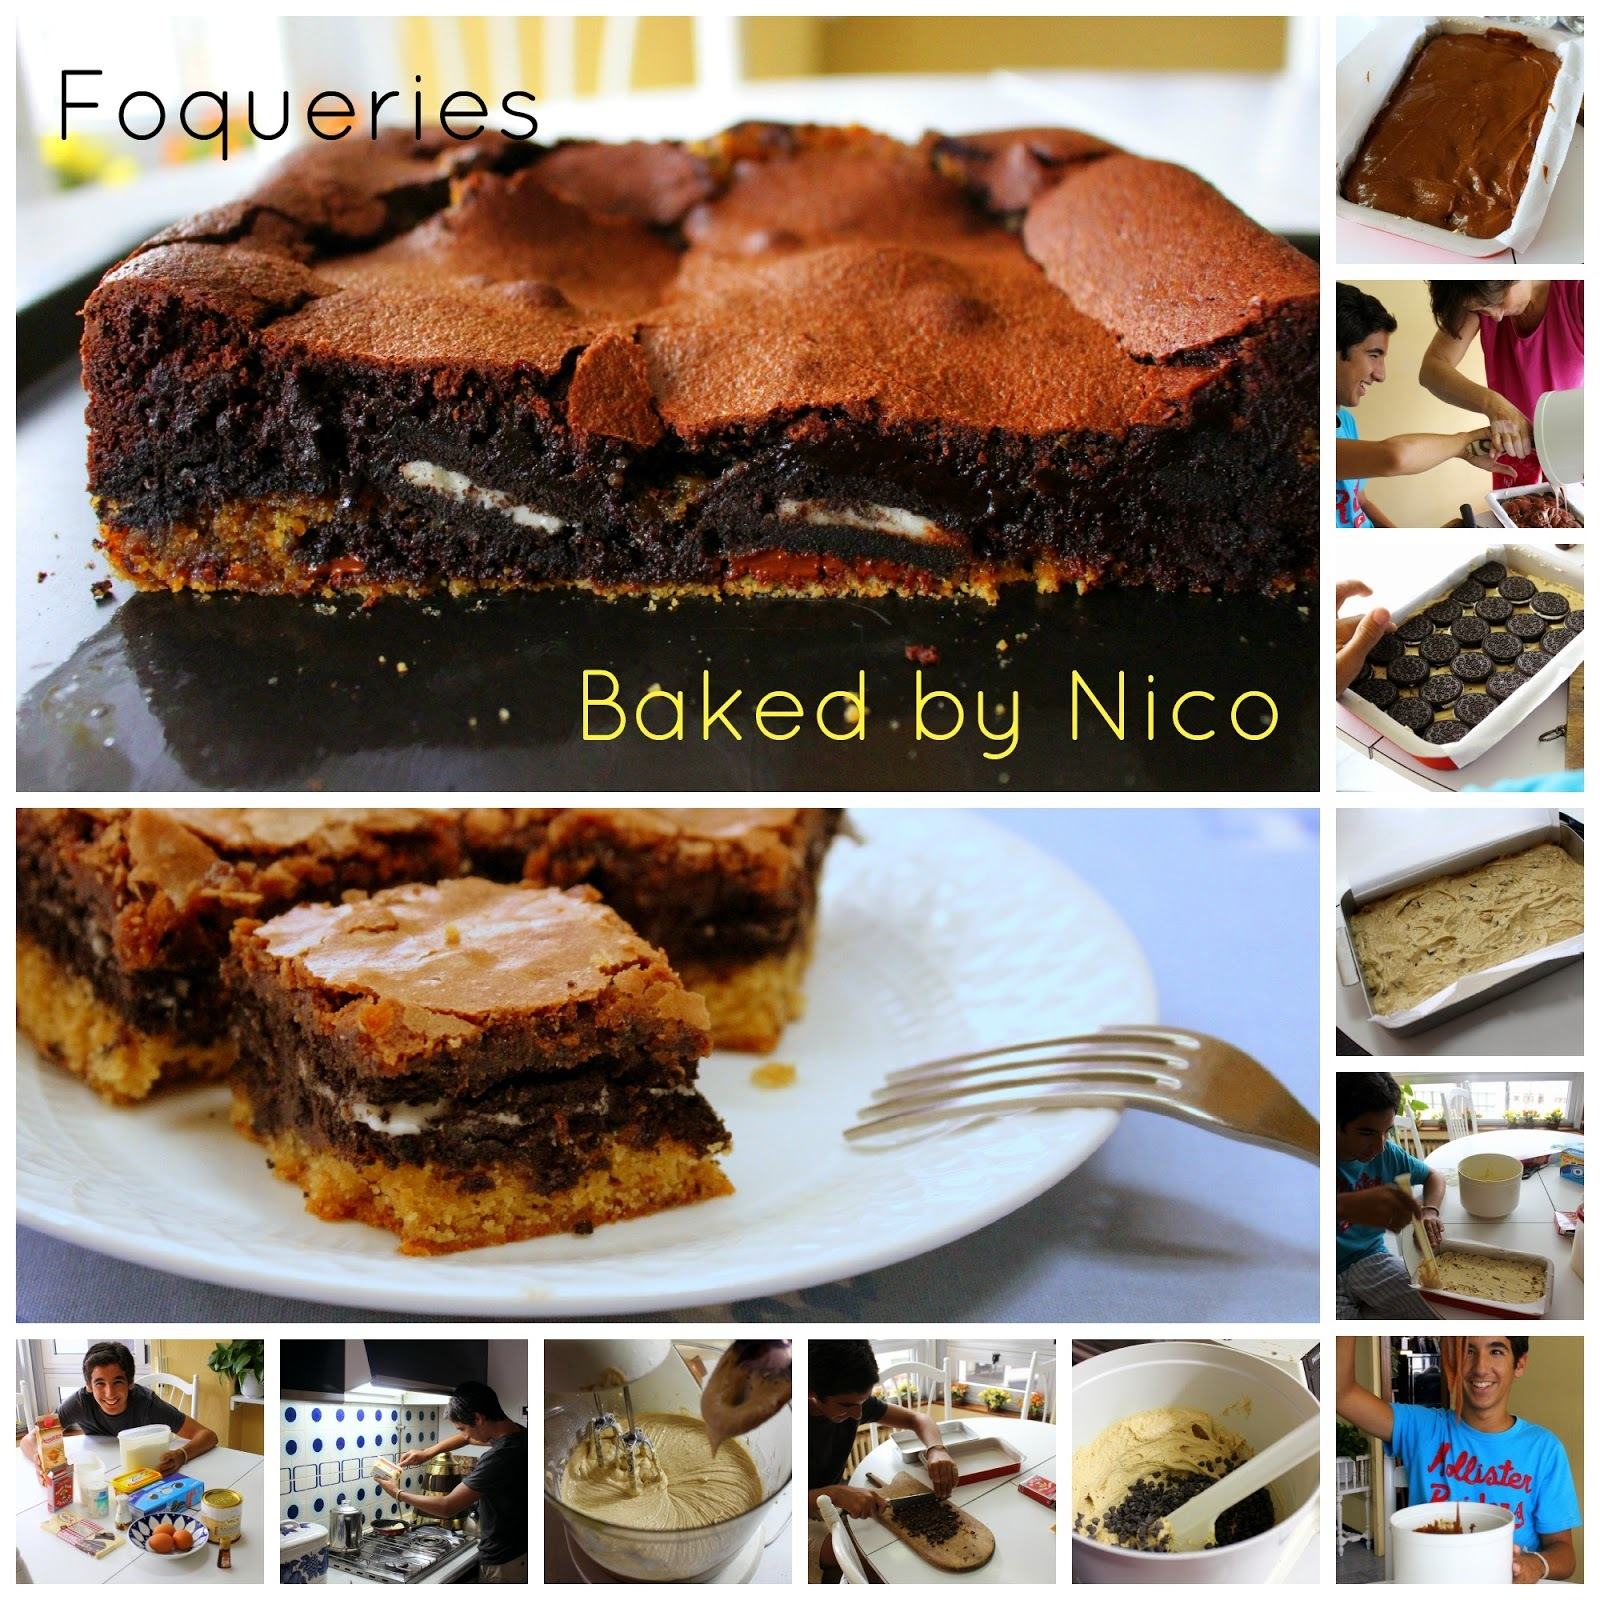 Foqueries baked by Nico (Tres capas: Brownies, galletas Oreo y masa de cookies con trocitos de chocolate)